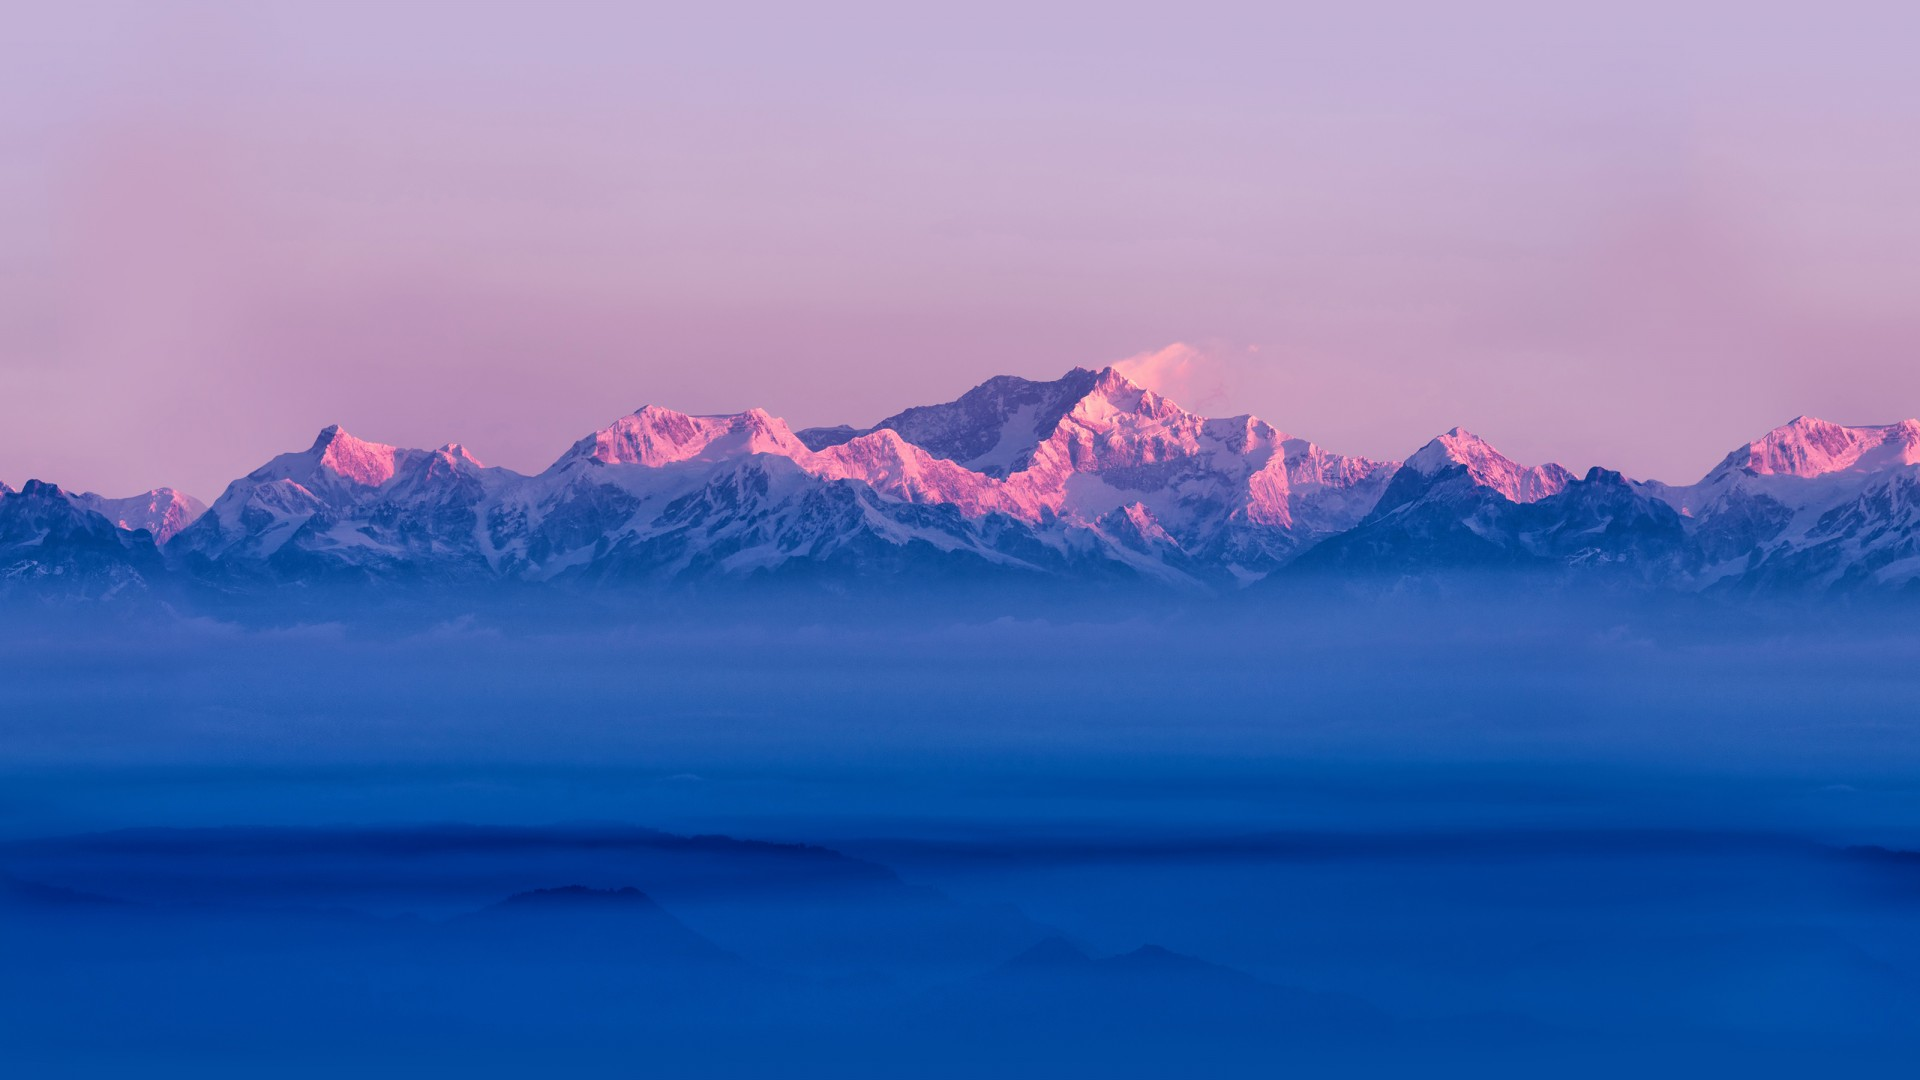 3d Hd Wallpapers For Windows 8 Himalayas Mountain Range Wallpapers Hd Wallpapers Id